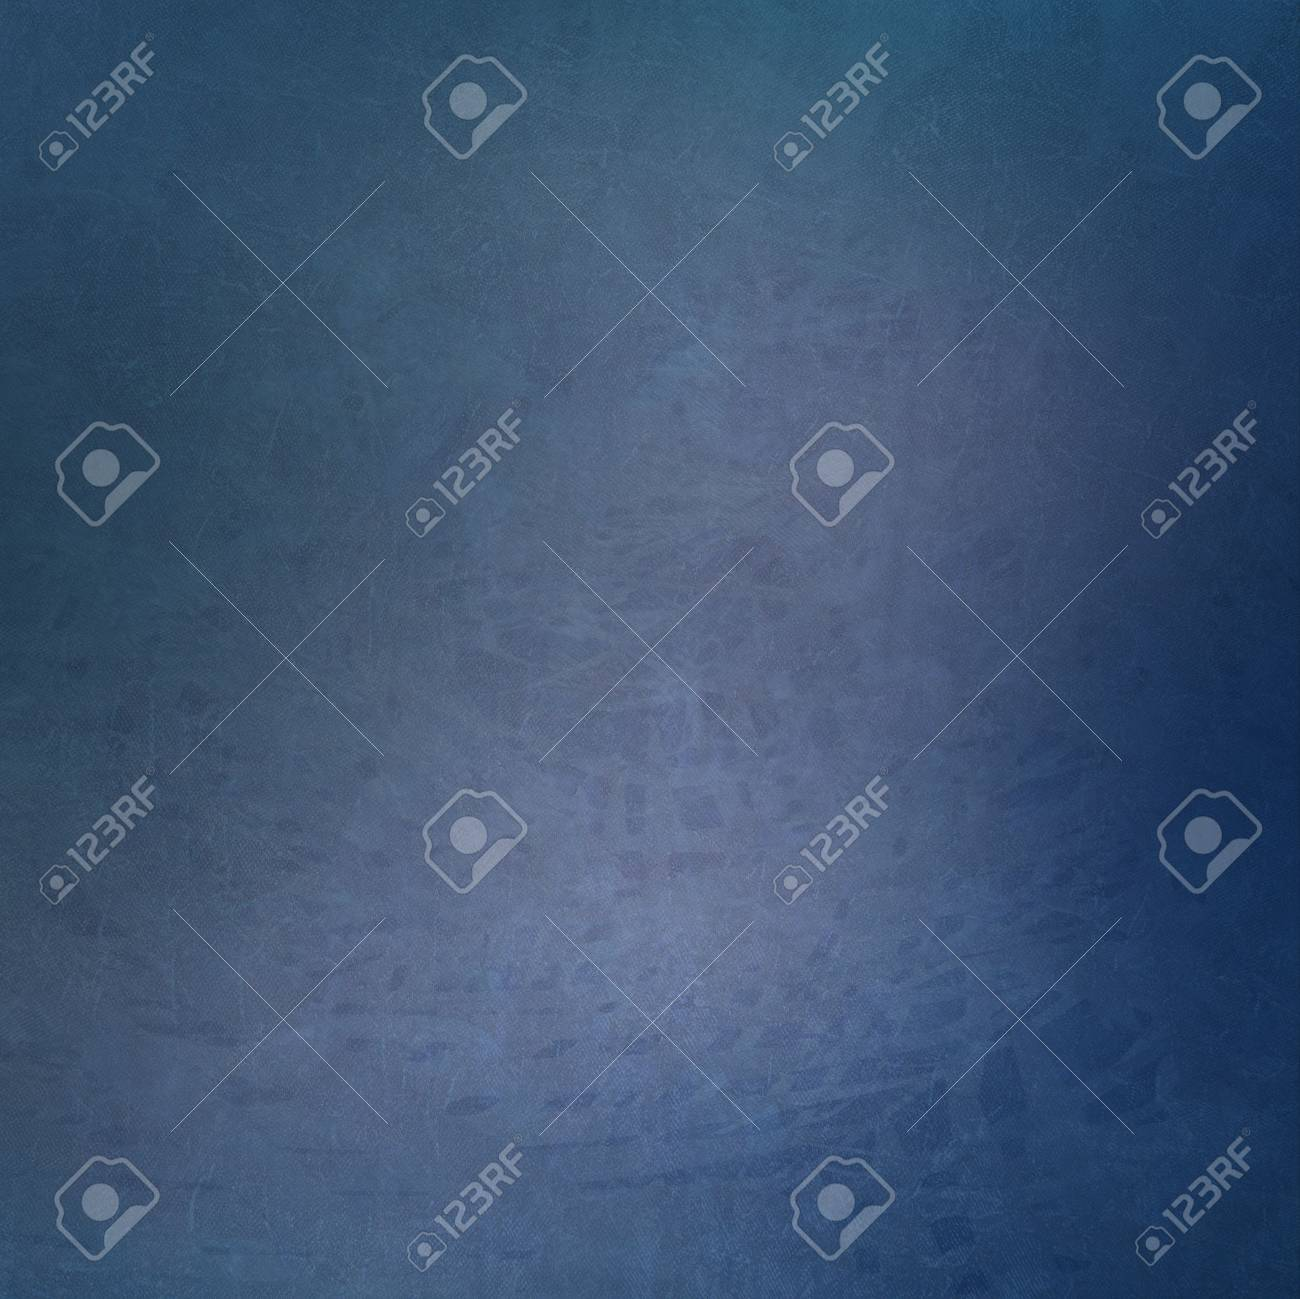 Blue abstract on cracked textured background Stock Photo - 6516014